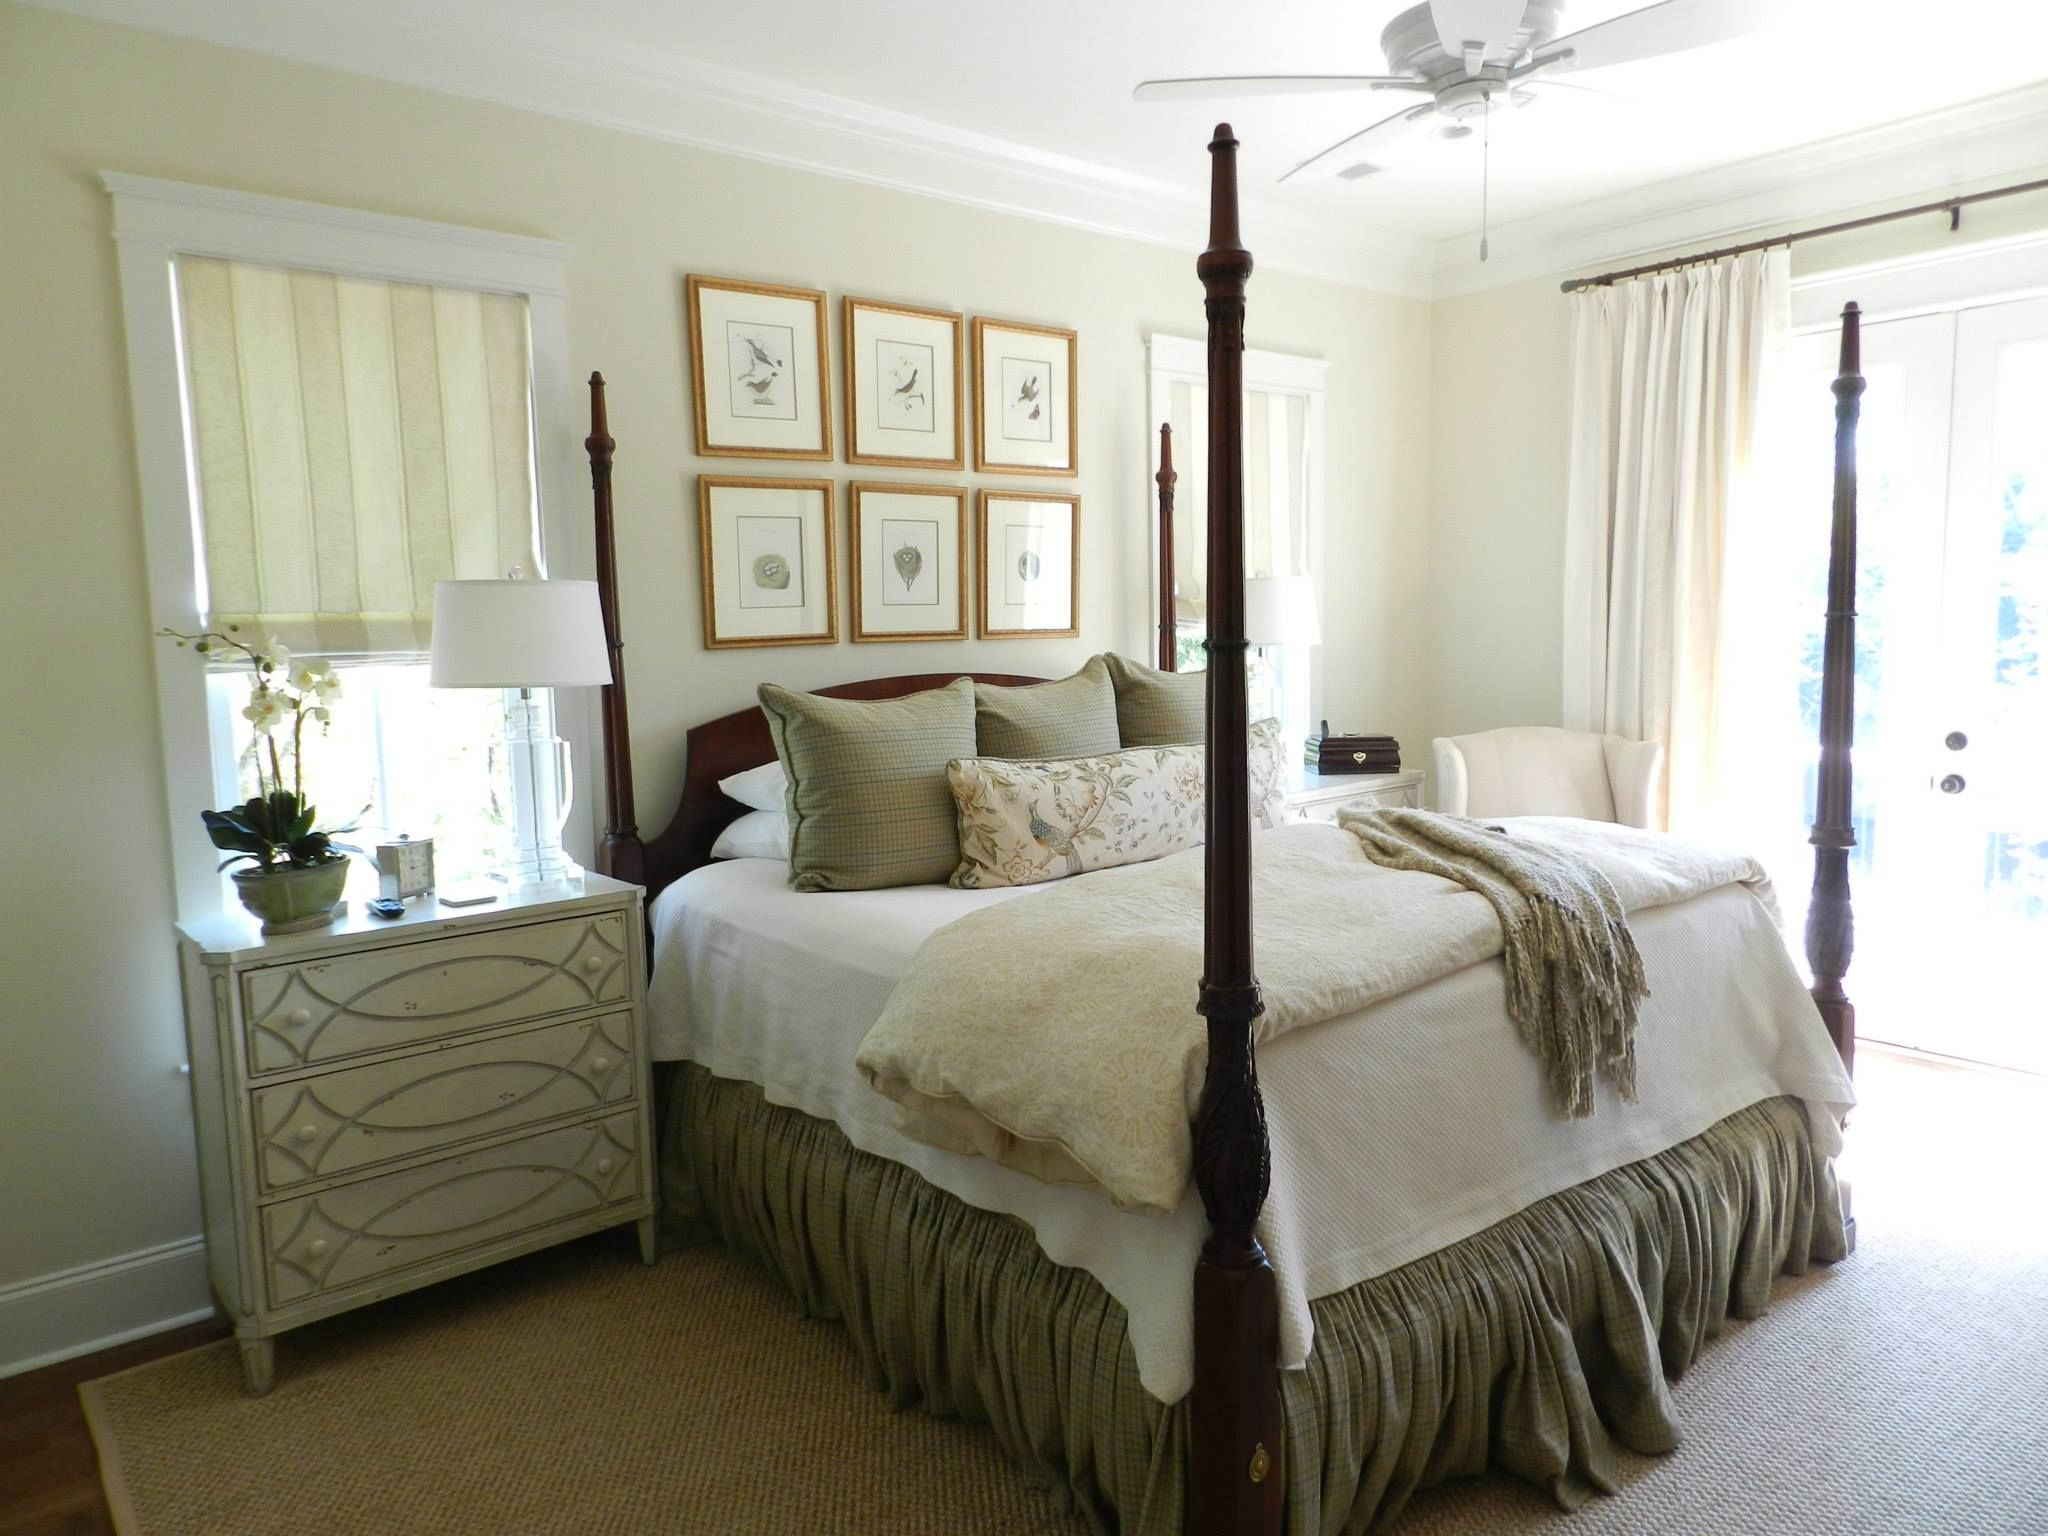 Laura Ramsey Furniture And Interiors | One Of Laurau0027s Current Projects. A  Beautiful Home In